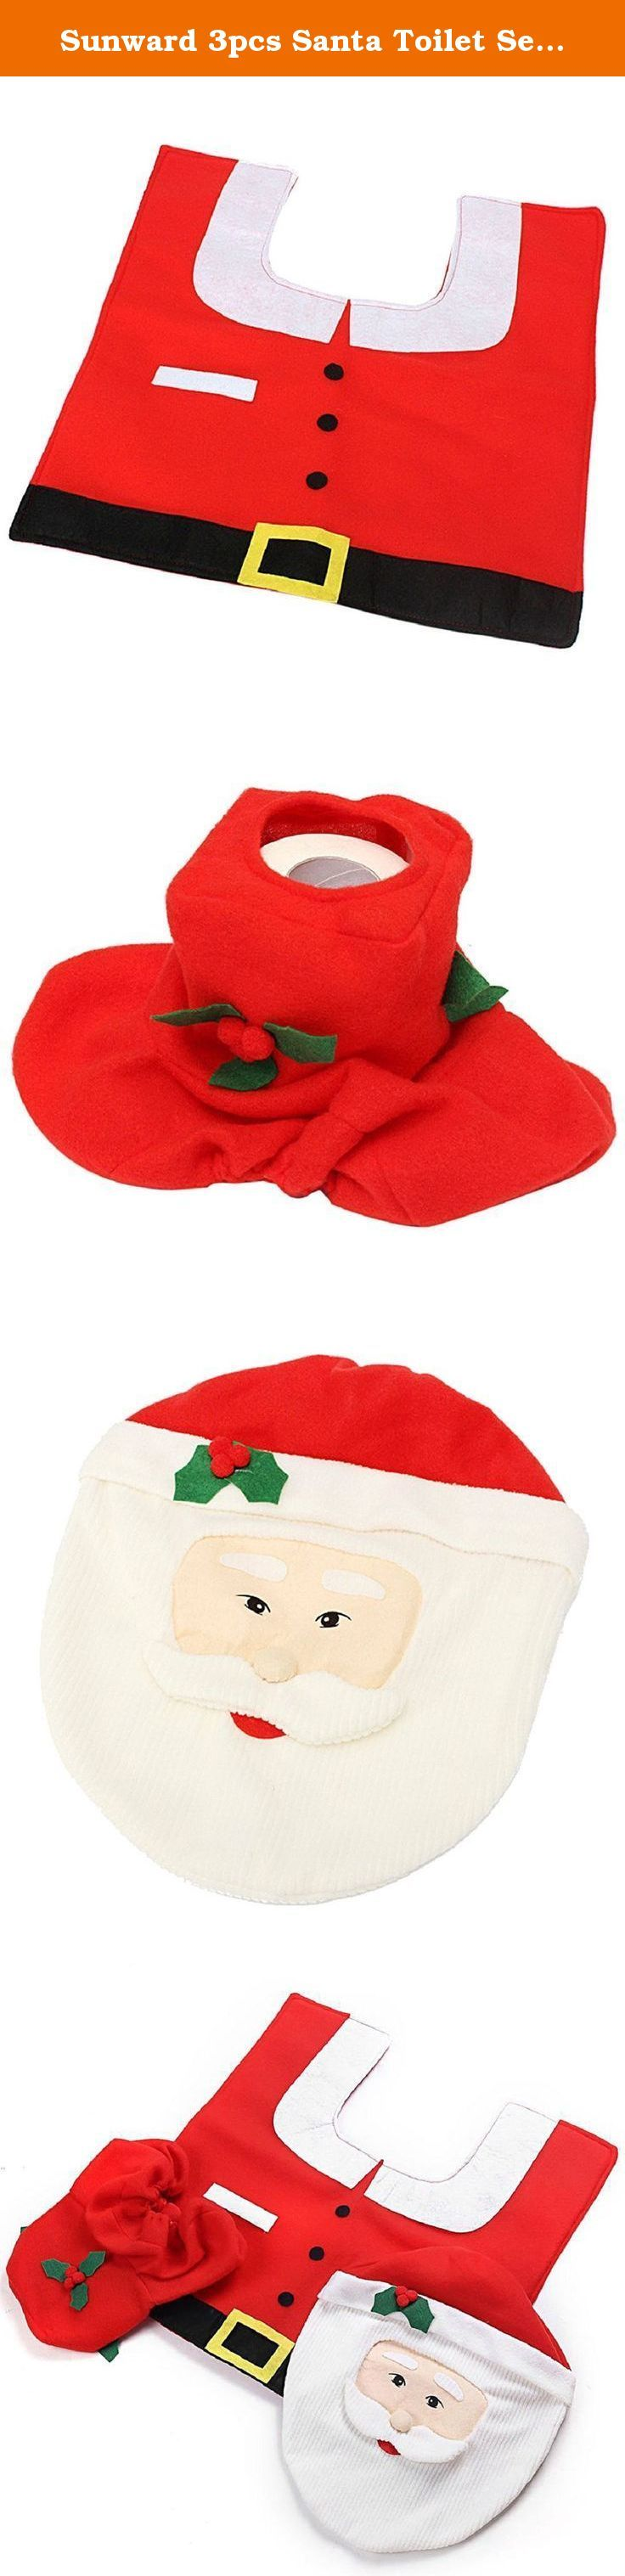 Sunward 3pcs Santa Toilet Seat Cover and Rug Bathroom Set Christmas Decoration (Red). 100% Brand new and high quality. Size: Toilet Cover:35cmX43cm ,Tank Cover:38cmX20cmX16cm ,Contour Rug:57cmX55cm. Toilet Seat And Tank Cover Is Included As Well As A Rug And Tissue Box Cover. Great Addition To The Holiday Spirit With A Cute Smiley Face Snowman ,Rug Has An Anti-Slippery Rubber Back ,Elastic Edges On The Covers For A Secure, Snuggly Fit ,It's Colorful, Cute, And A Holiday Spirit Go Booster....